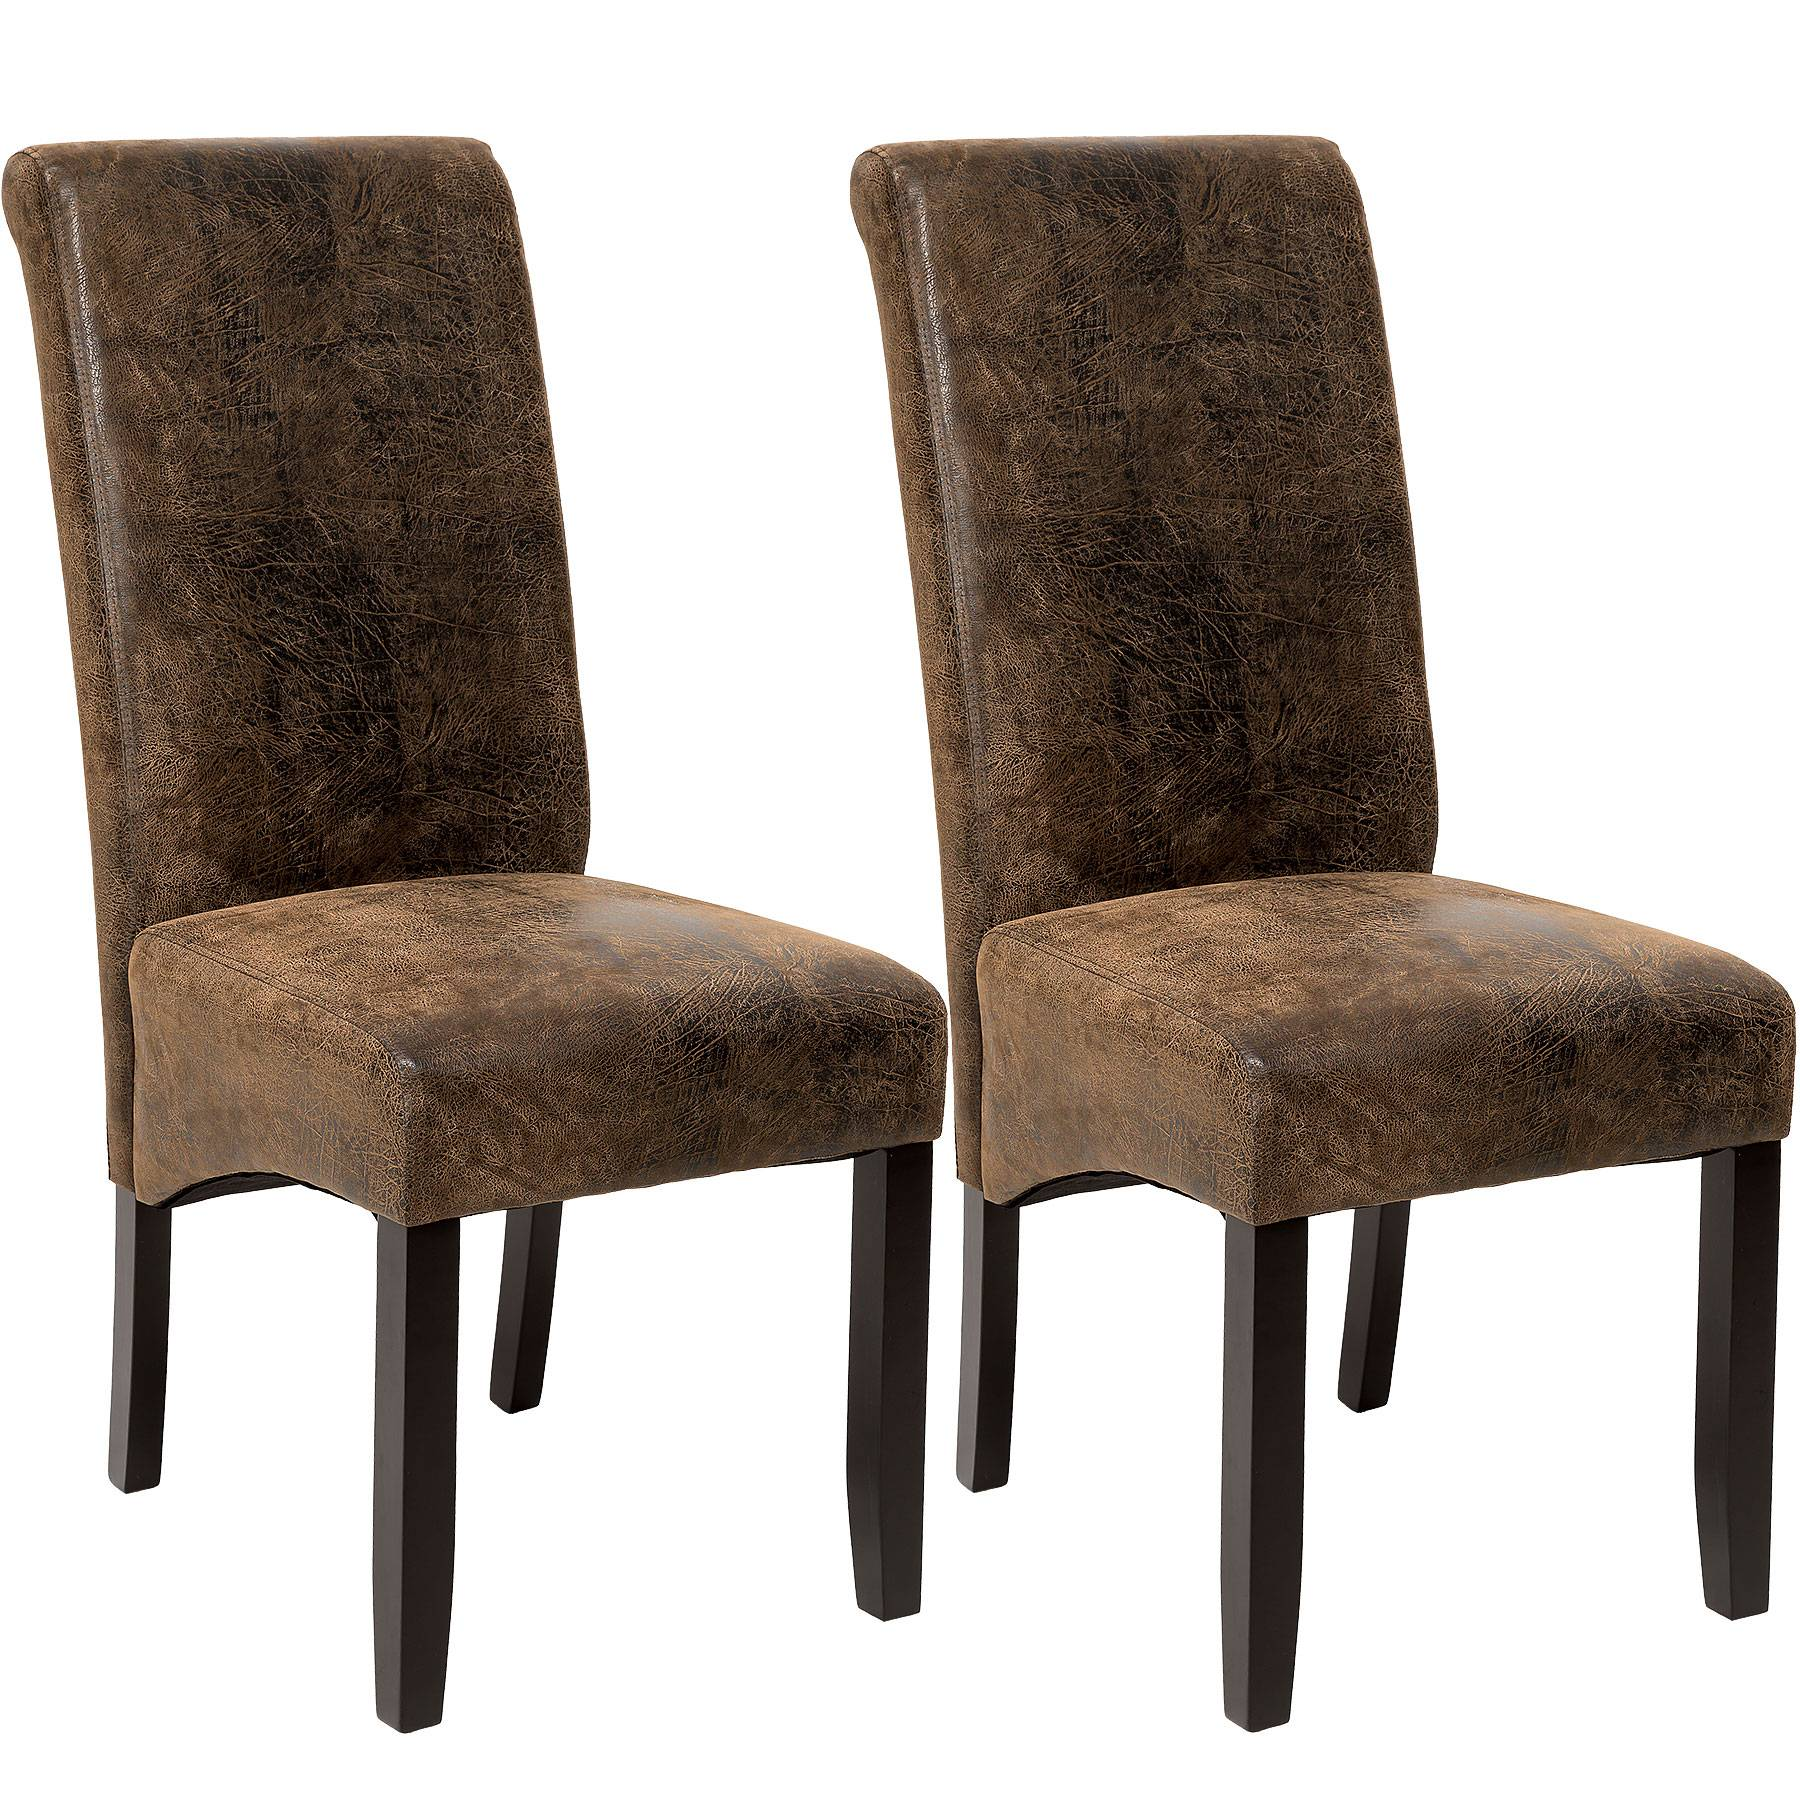 tectake Dining chairs with ergonomic seat shape - antique brown